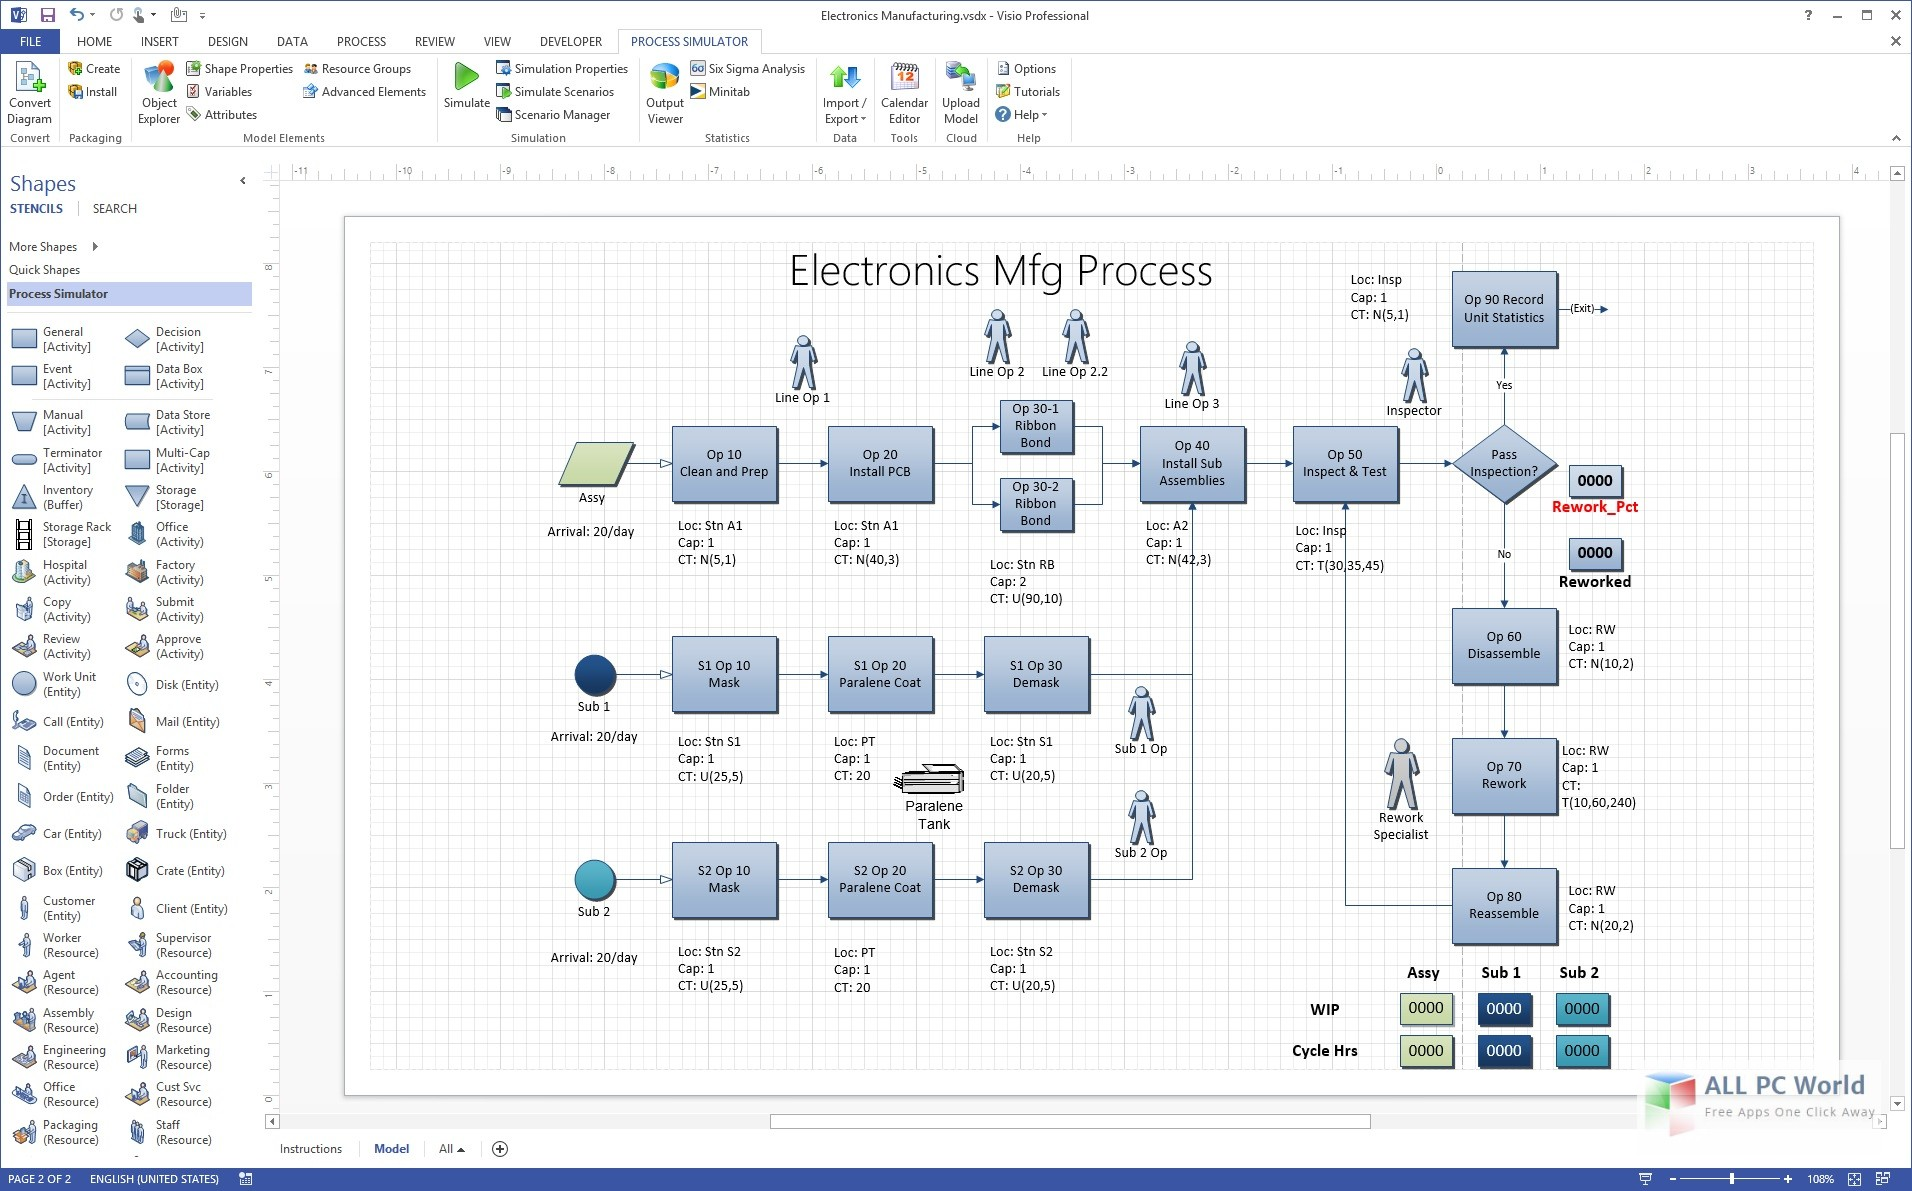 visio 2016 pro download